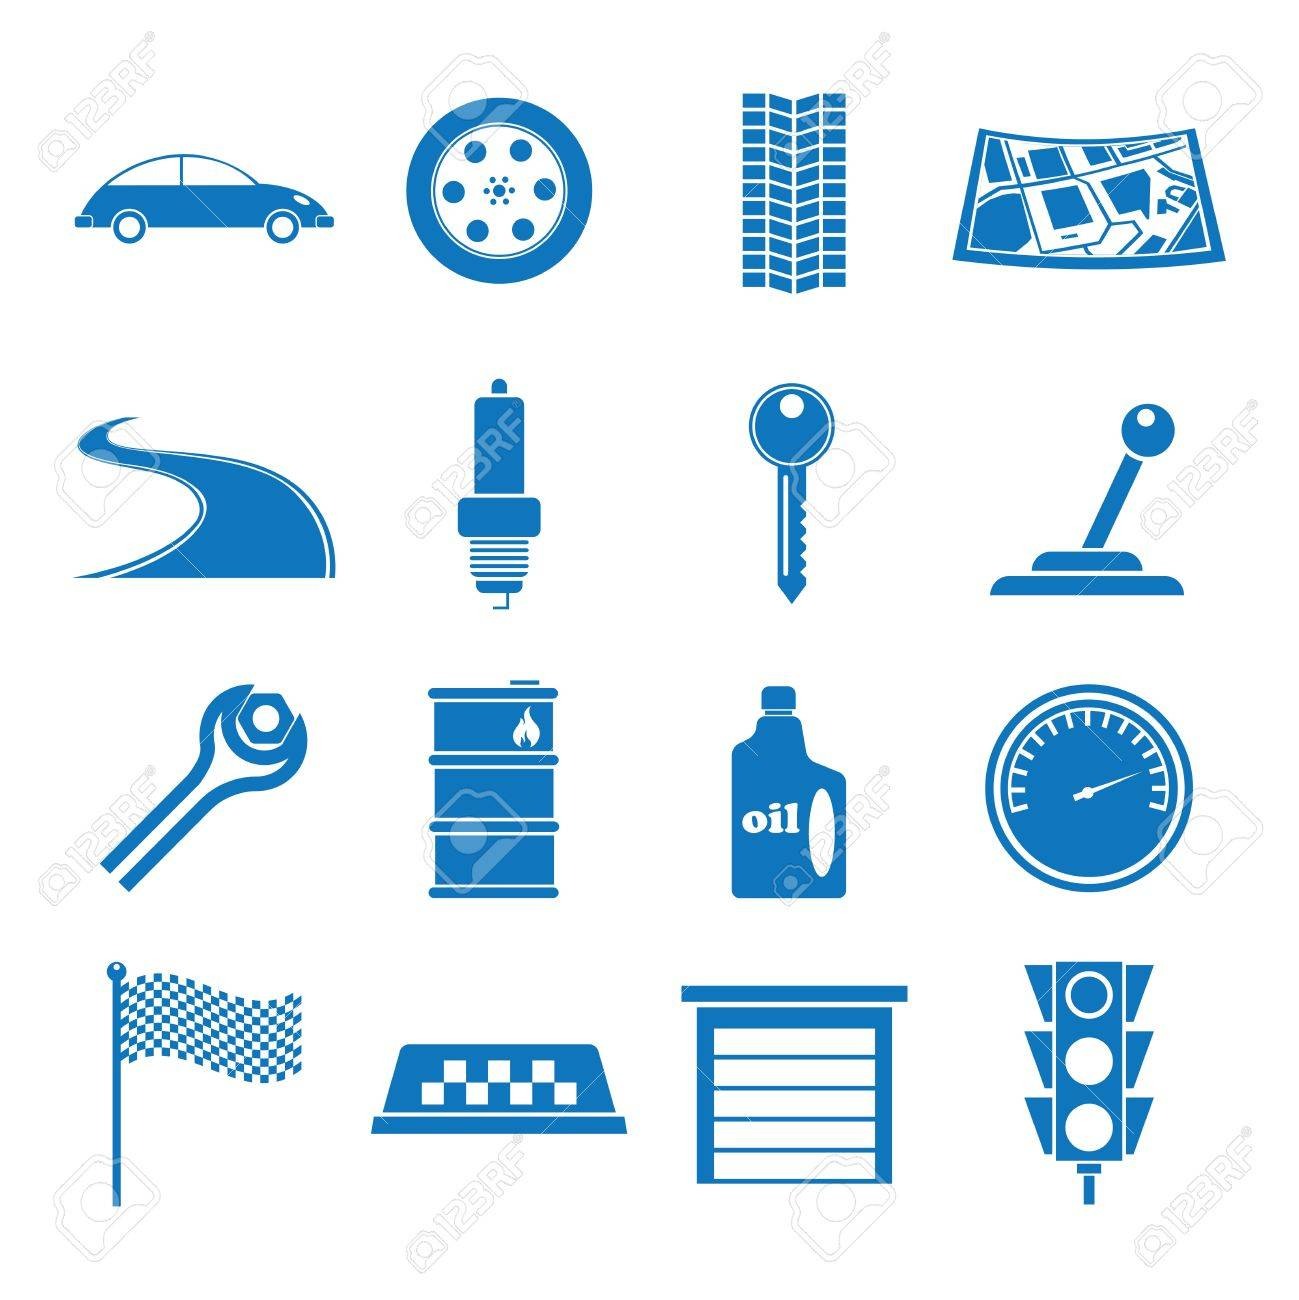 Vector illustration icons on the Tamu Car Stock Vector - 13734911